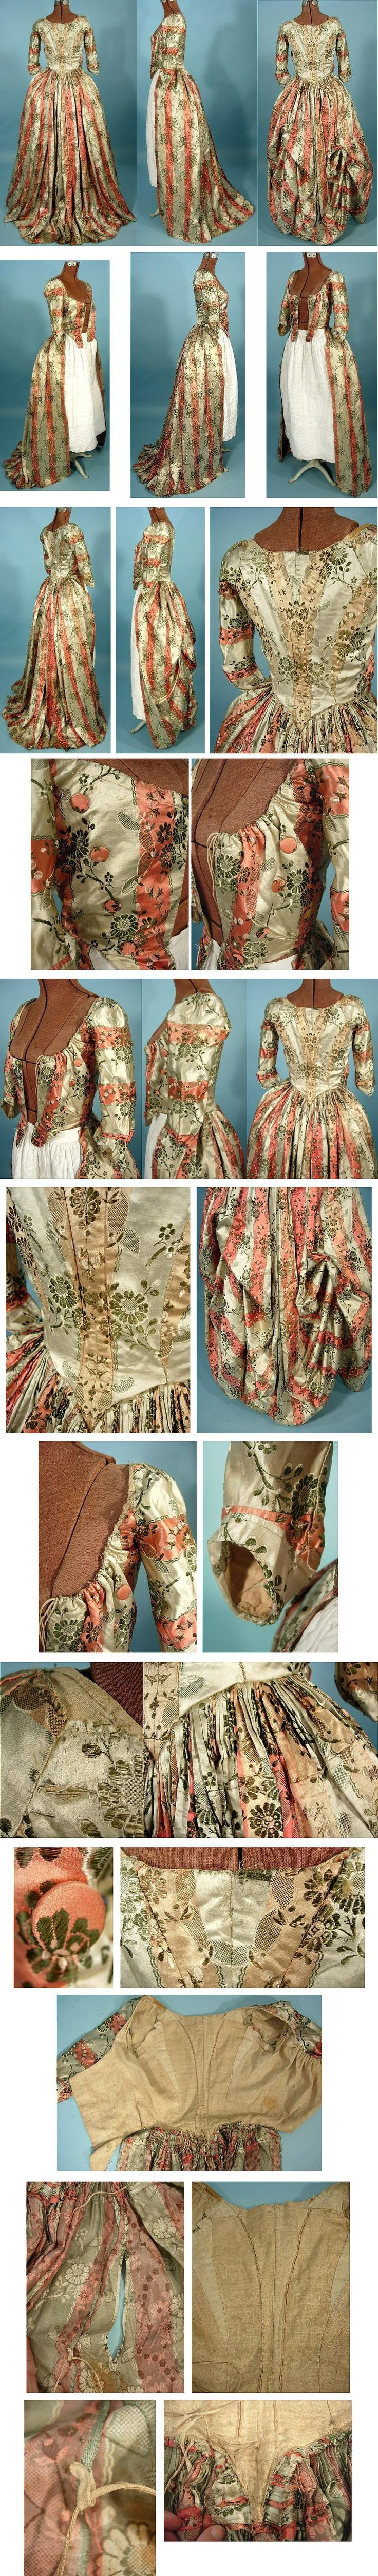 c. 1770's Polonaise of Museum Quality Floral and Striped Brocaded Silk Polonaise with Original internal Drawstrings http://antiquedress.com/item5092.htm